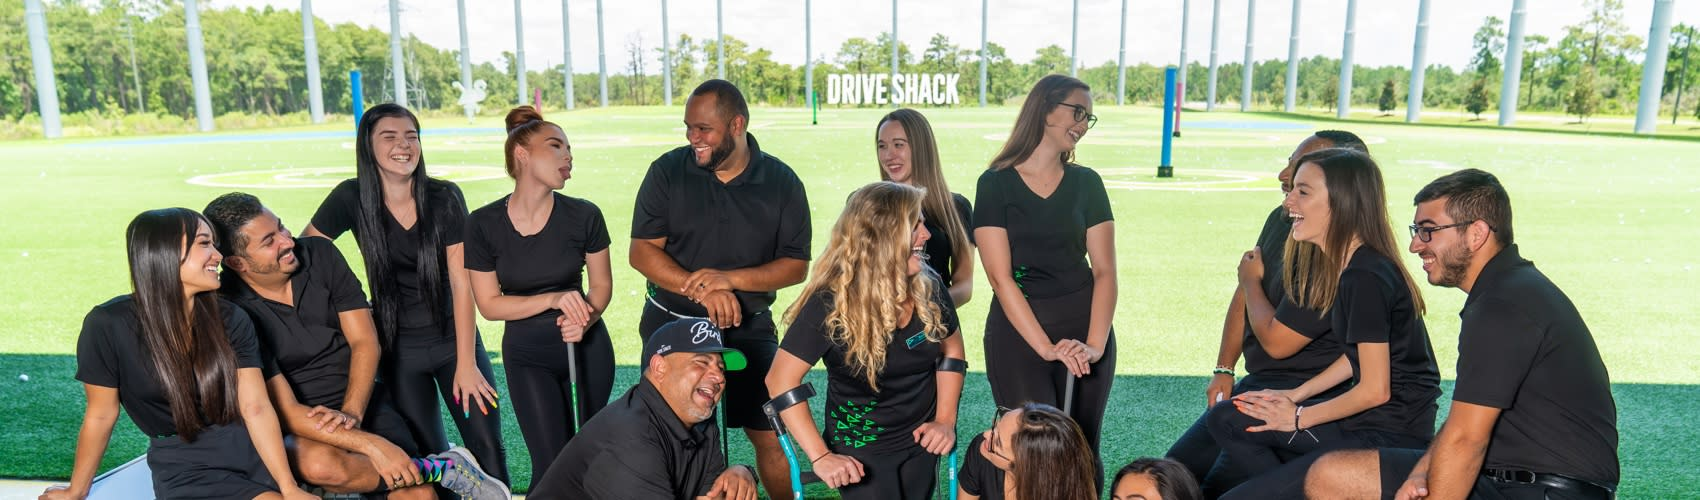 Drive Shack employees in a group laughing.